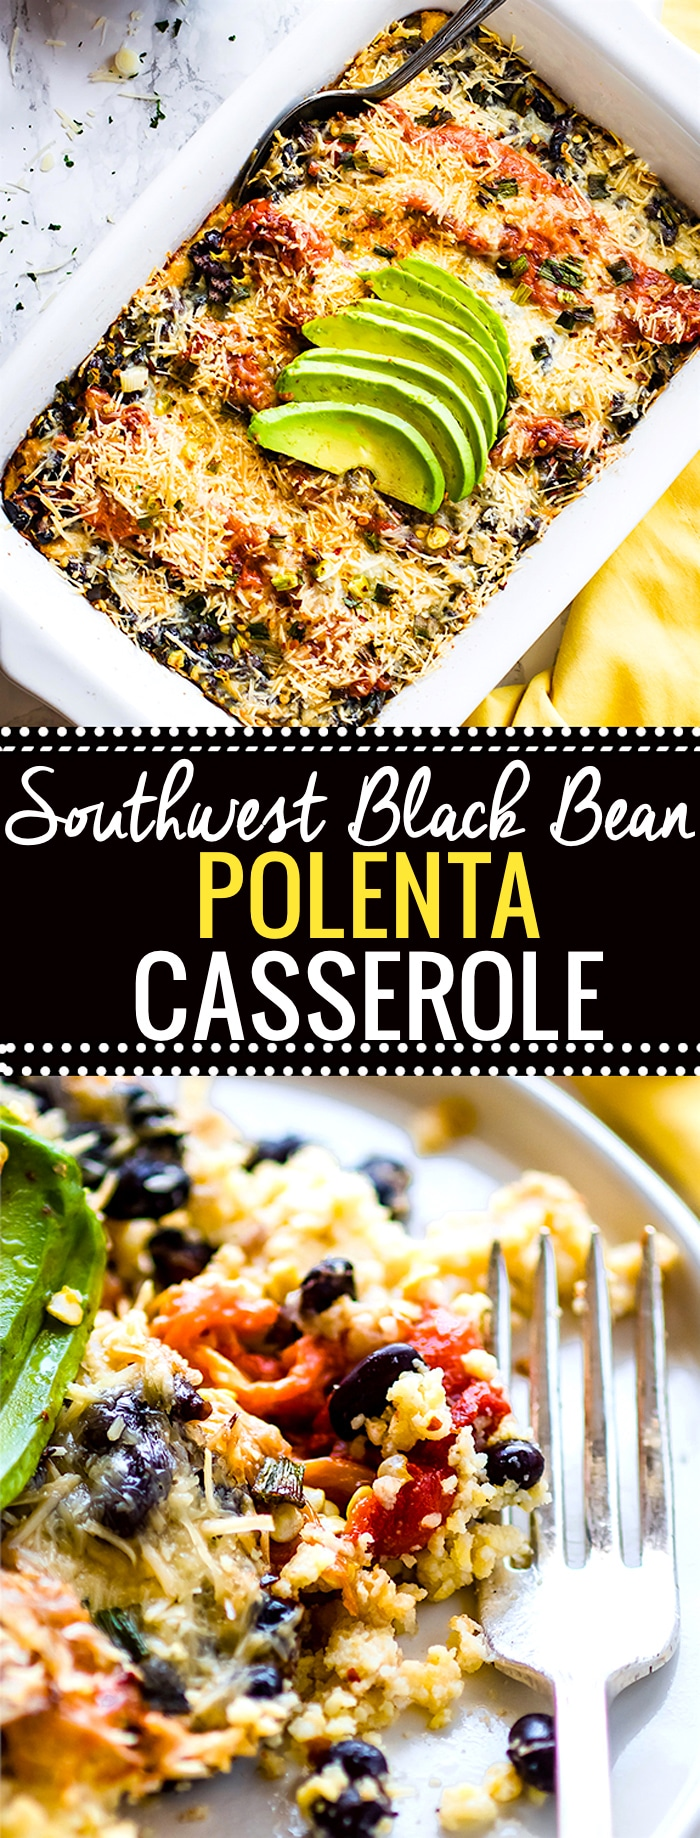 Southwest Black Beans Polenta Casserole! A gluten free vegetarian casserole baked with Southwest black beans, polenta, peppers, and more. Easy and healthy! Feeds a crowd, easy to make ahead! @cottercrunch